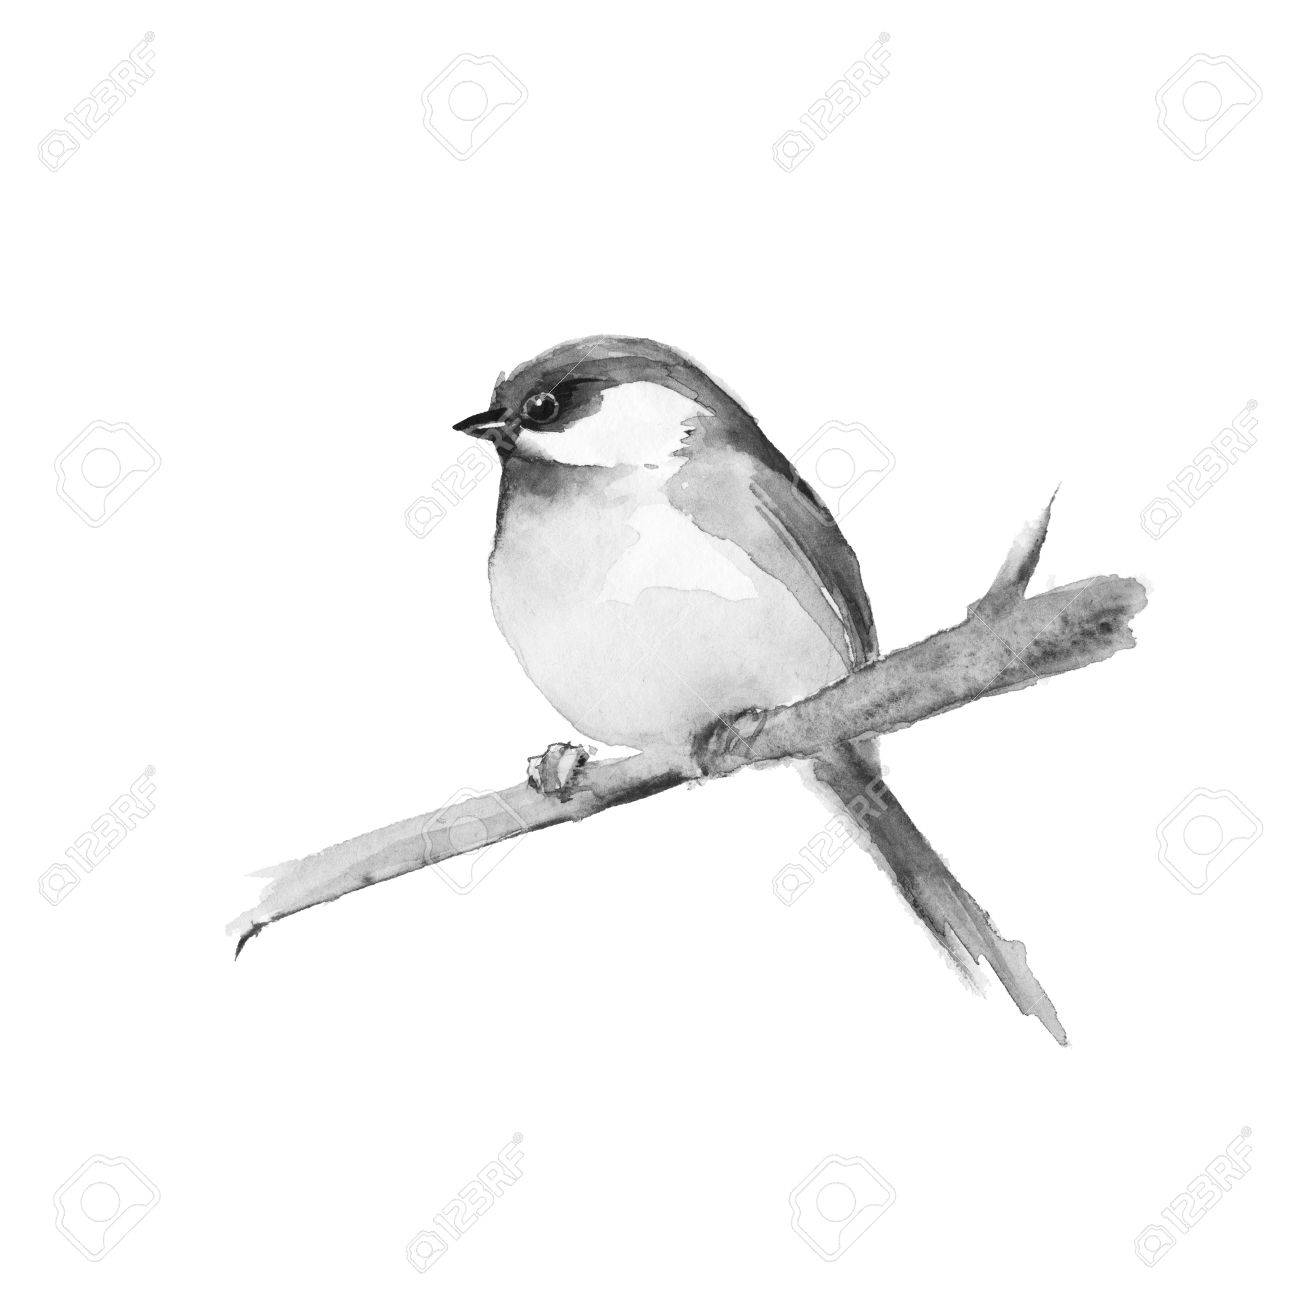 Small bird on branch. Black and white watercolor painting. - 64237344